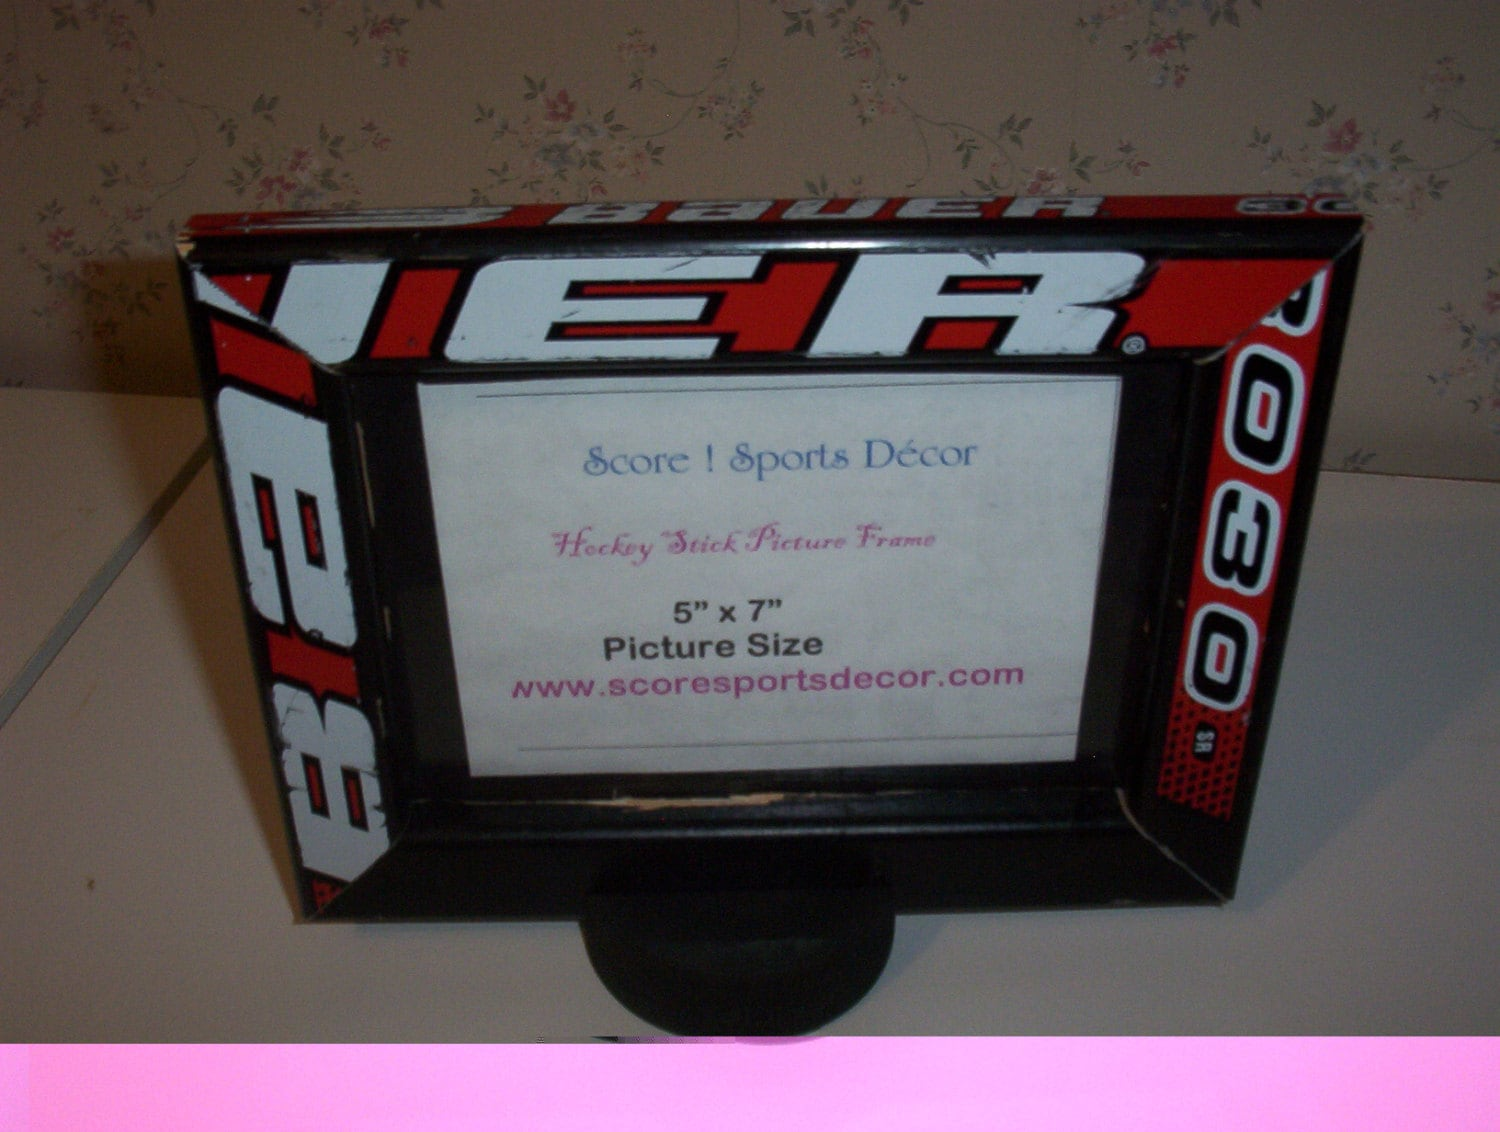 Hockey Stick Picture frame 5x7